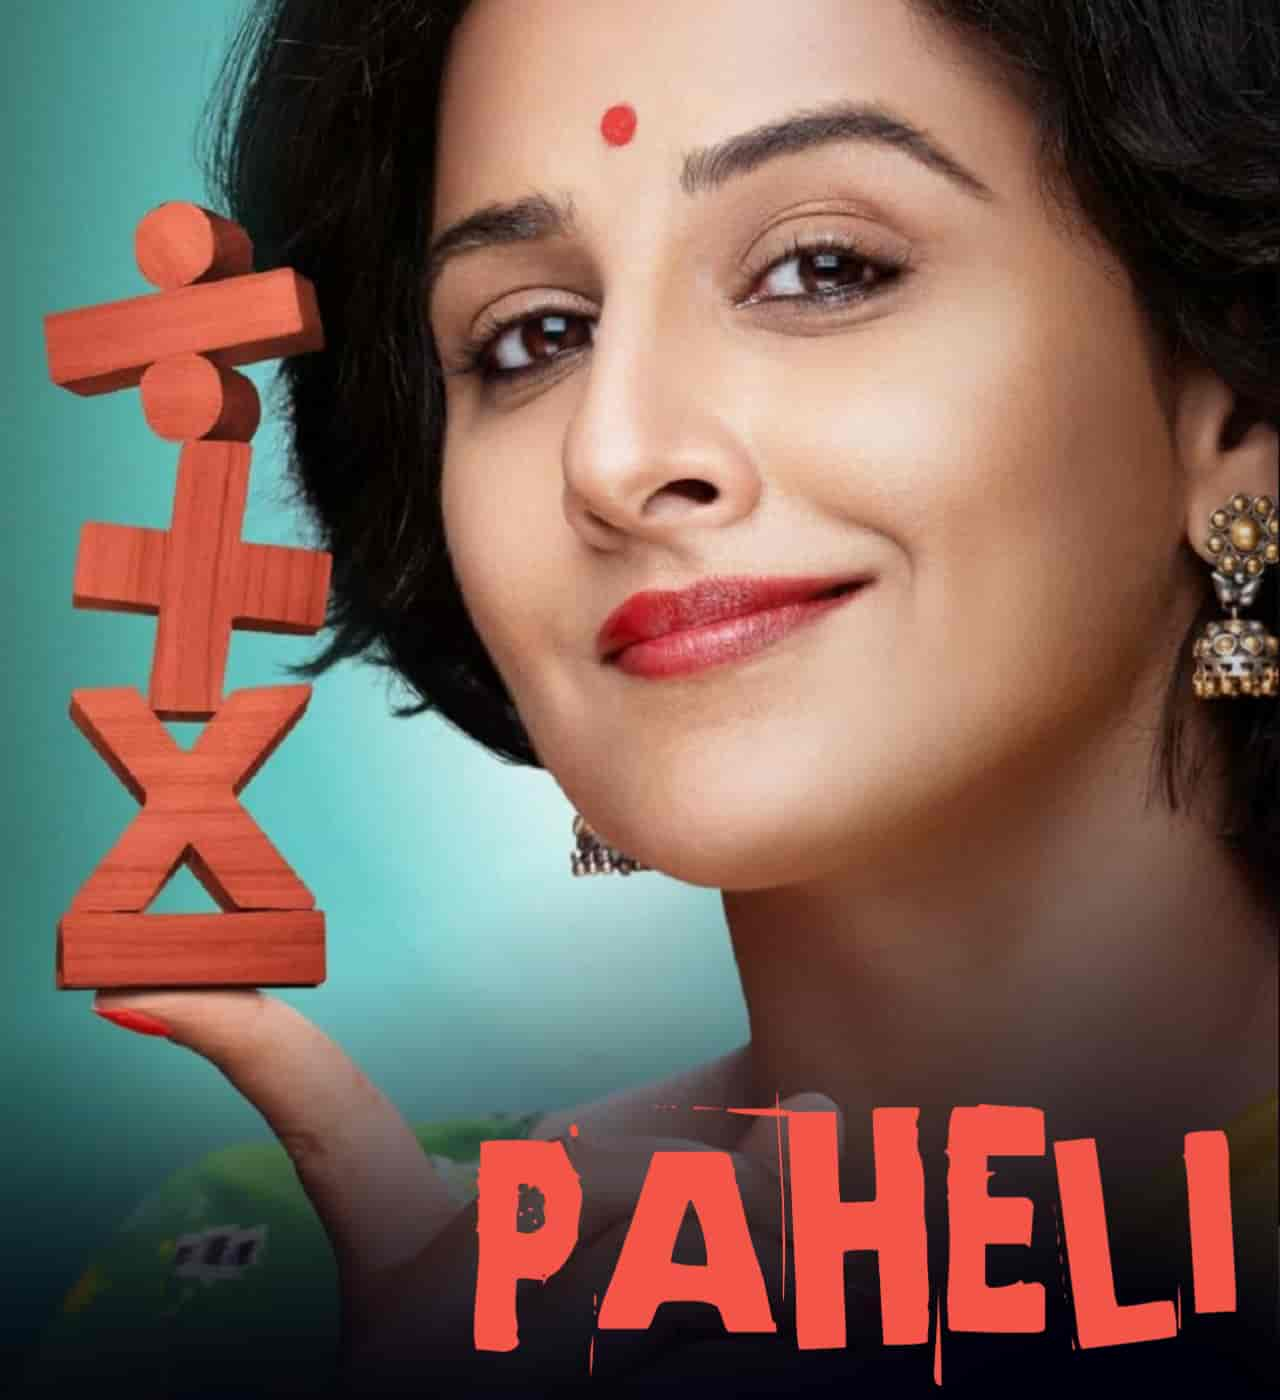 A beautiful hindi song of movie Shakuntala Devi has released which is titled Paheli sung by classical queen Shreya Ghoshal. Very famous actress Vidya Balan is featuring in this song as lead role. This movie is about genius lady Shakuntala Devi's real life who has world record on multiplication history. Music of this song has given by Sachin-Jigar while this song Paheli lyrics has penned by Priya Saraiya. This song is presented by Zee Music Company label.